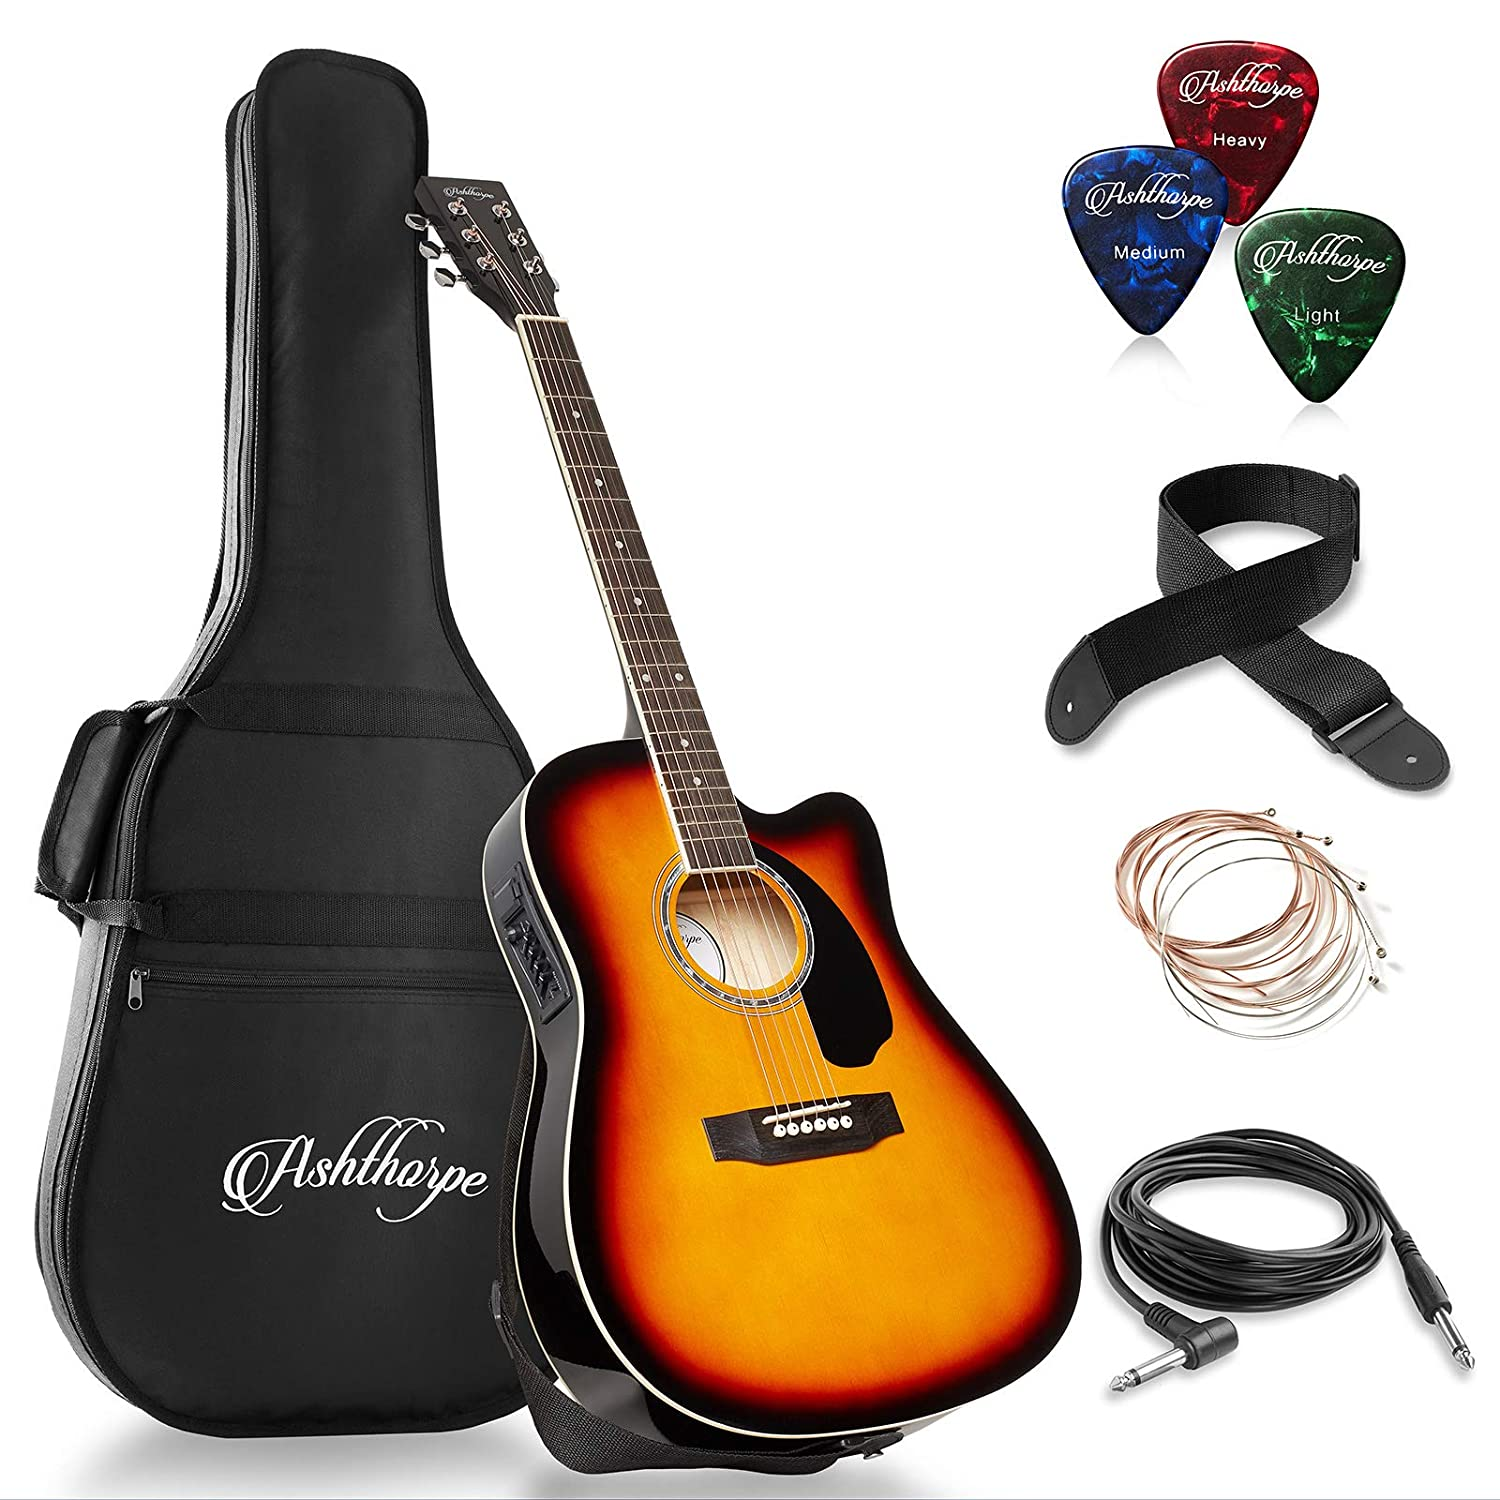 B07FDLZ56Y Ashthorpe Full-Size Cutaway Thinline Acoustic-Electric Guitar Package - Premium Tonewoods - Sunburst 713BfbyeAYL